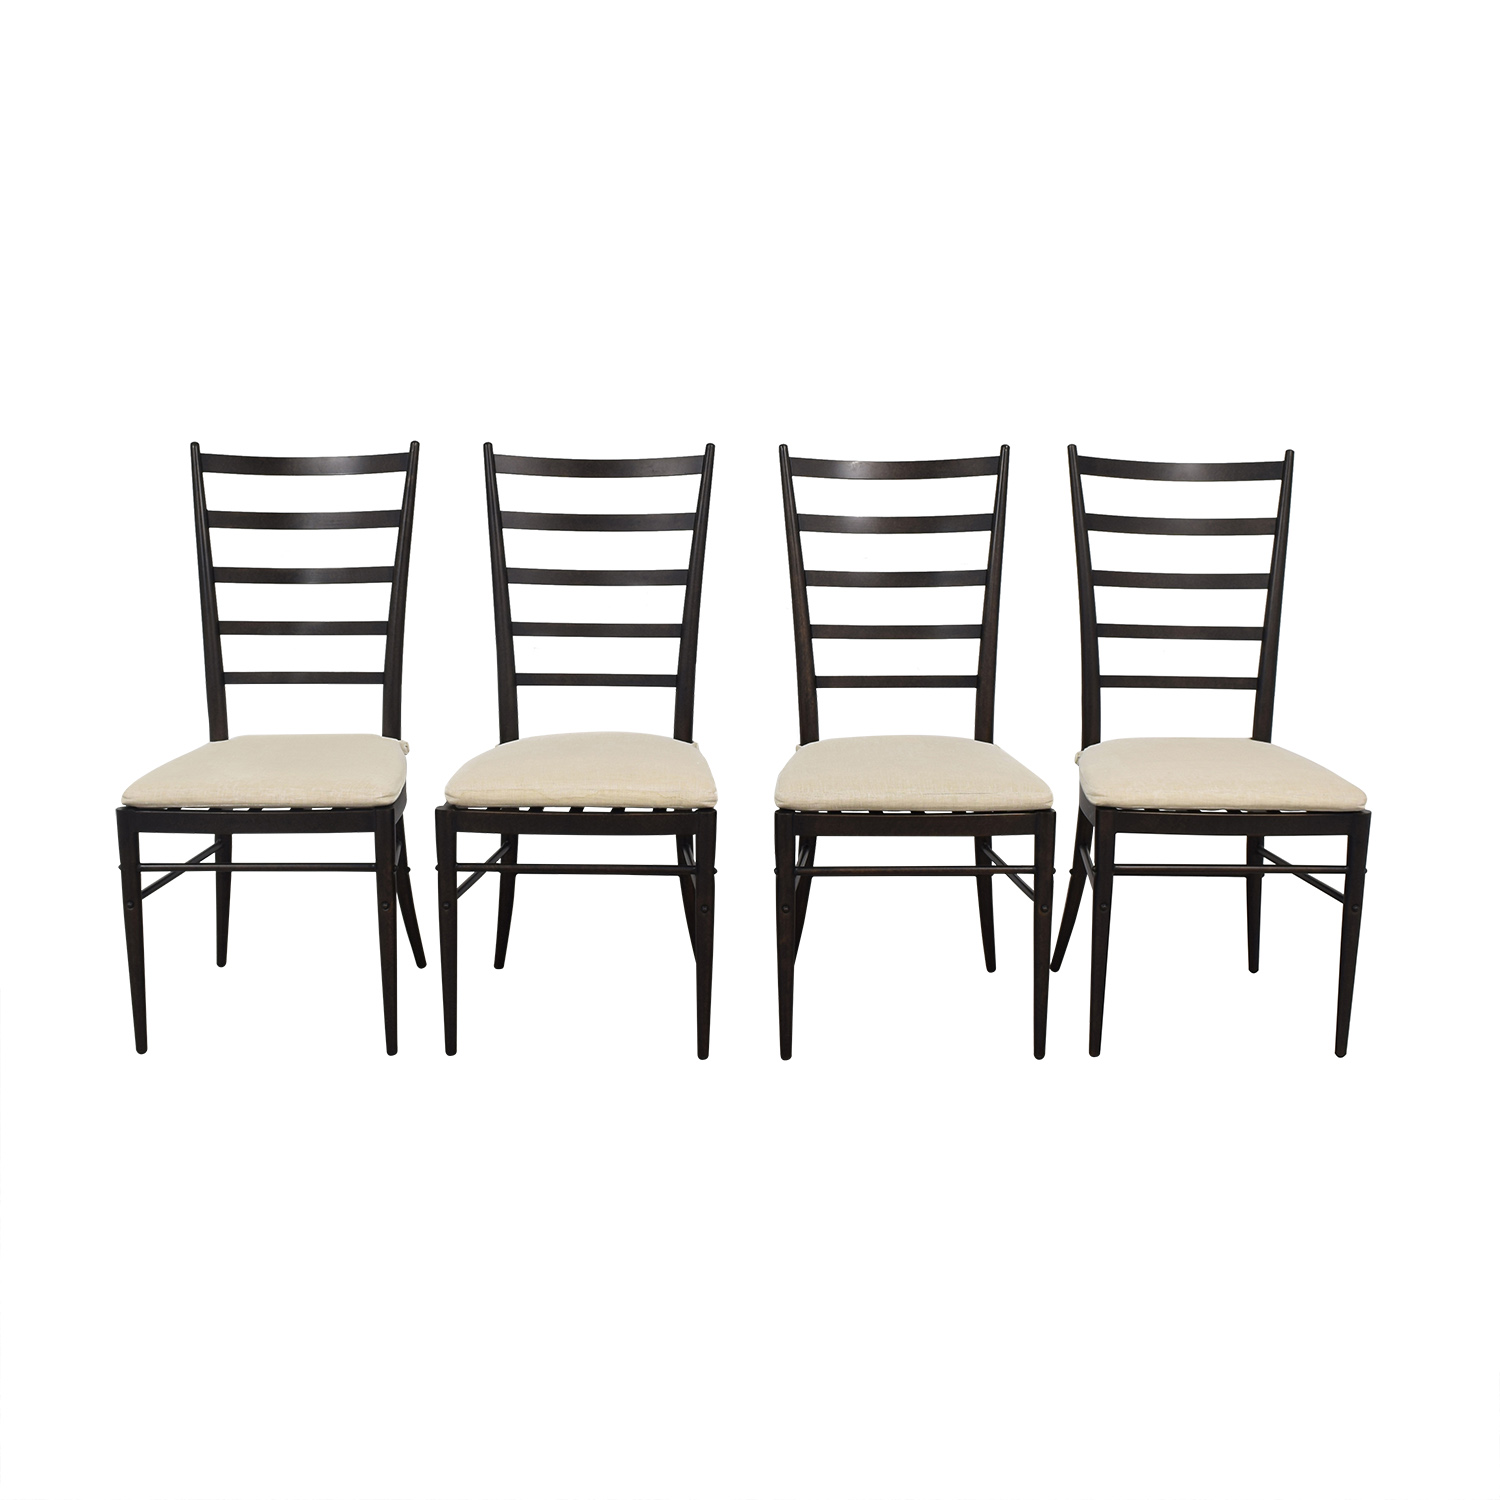 Crate & Barrel Crate & Barrel Ladder Back Dining Chairs for sale